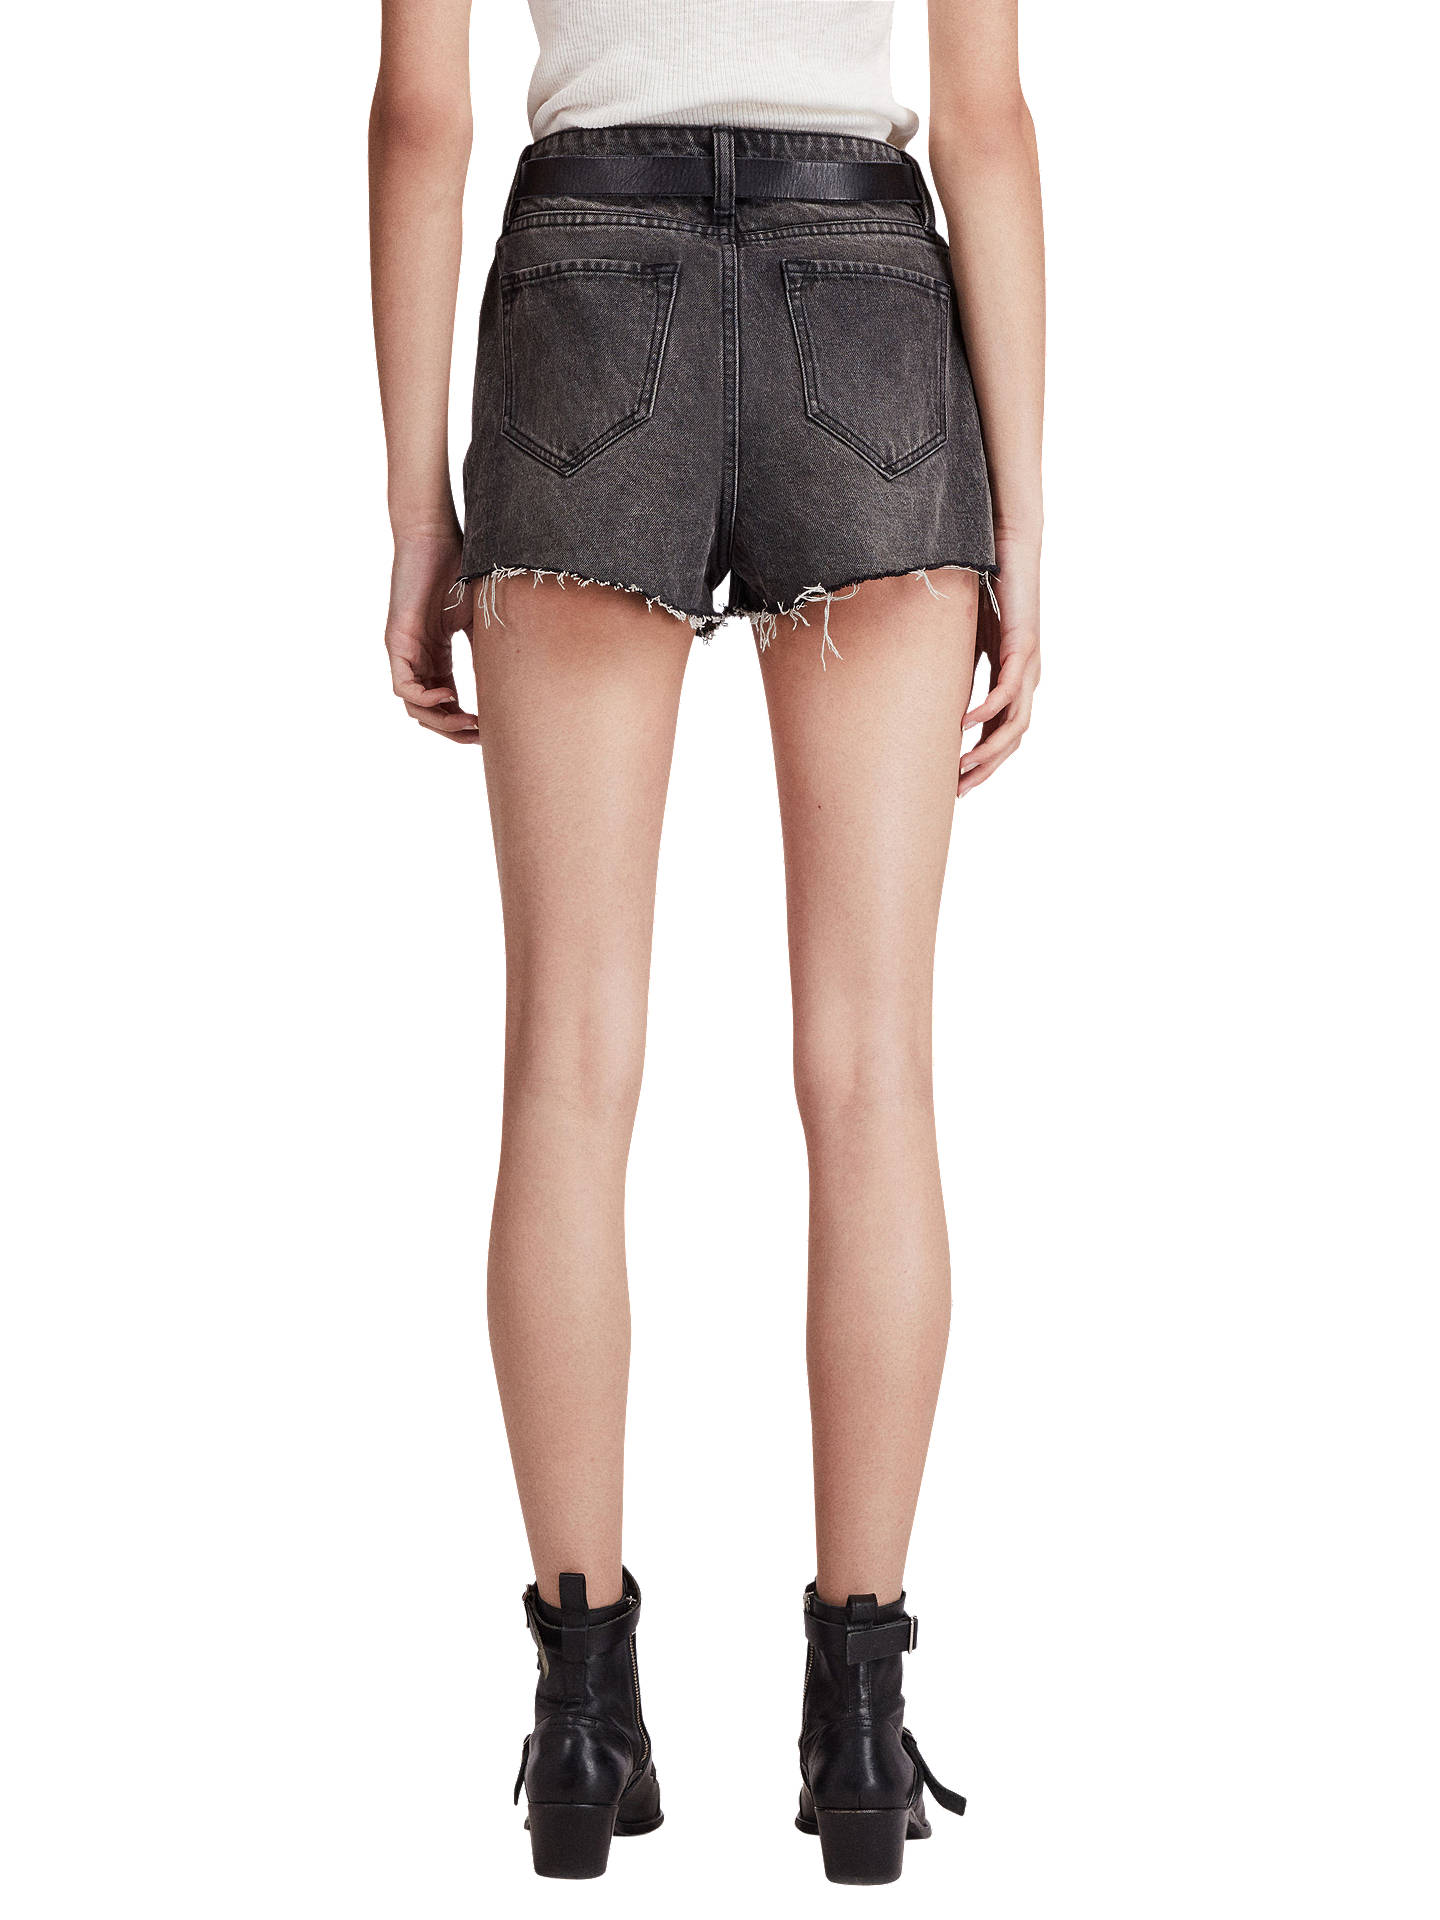 BuyAllSaints Nyla High-Waisted Shorts, Washed Black, 26 Online at johnlewis.com